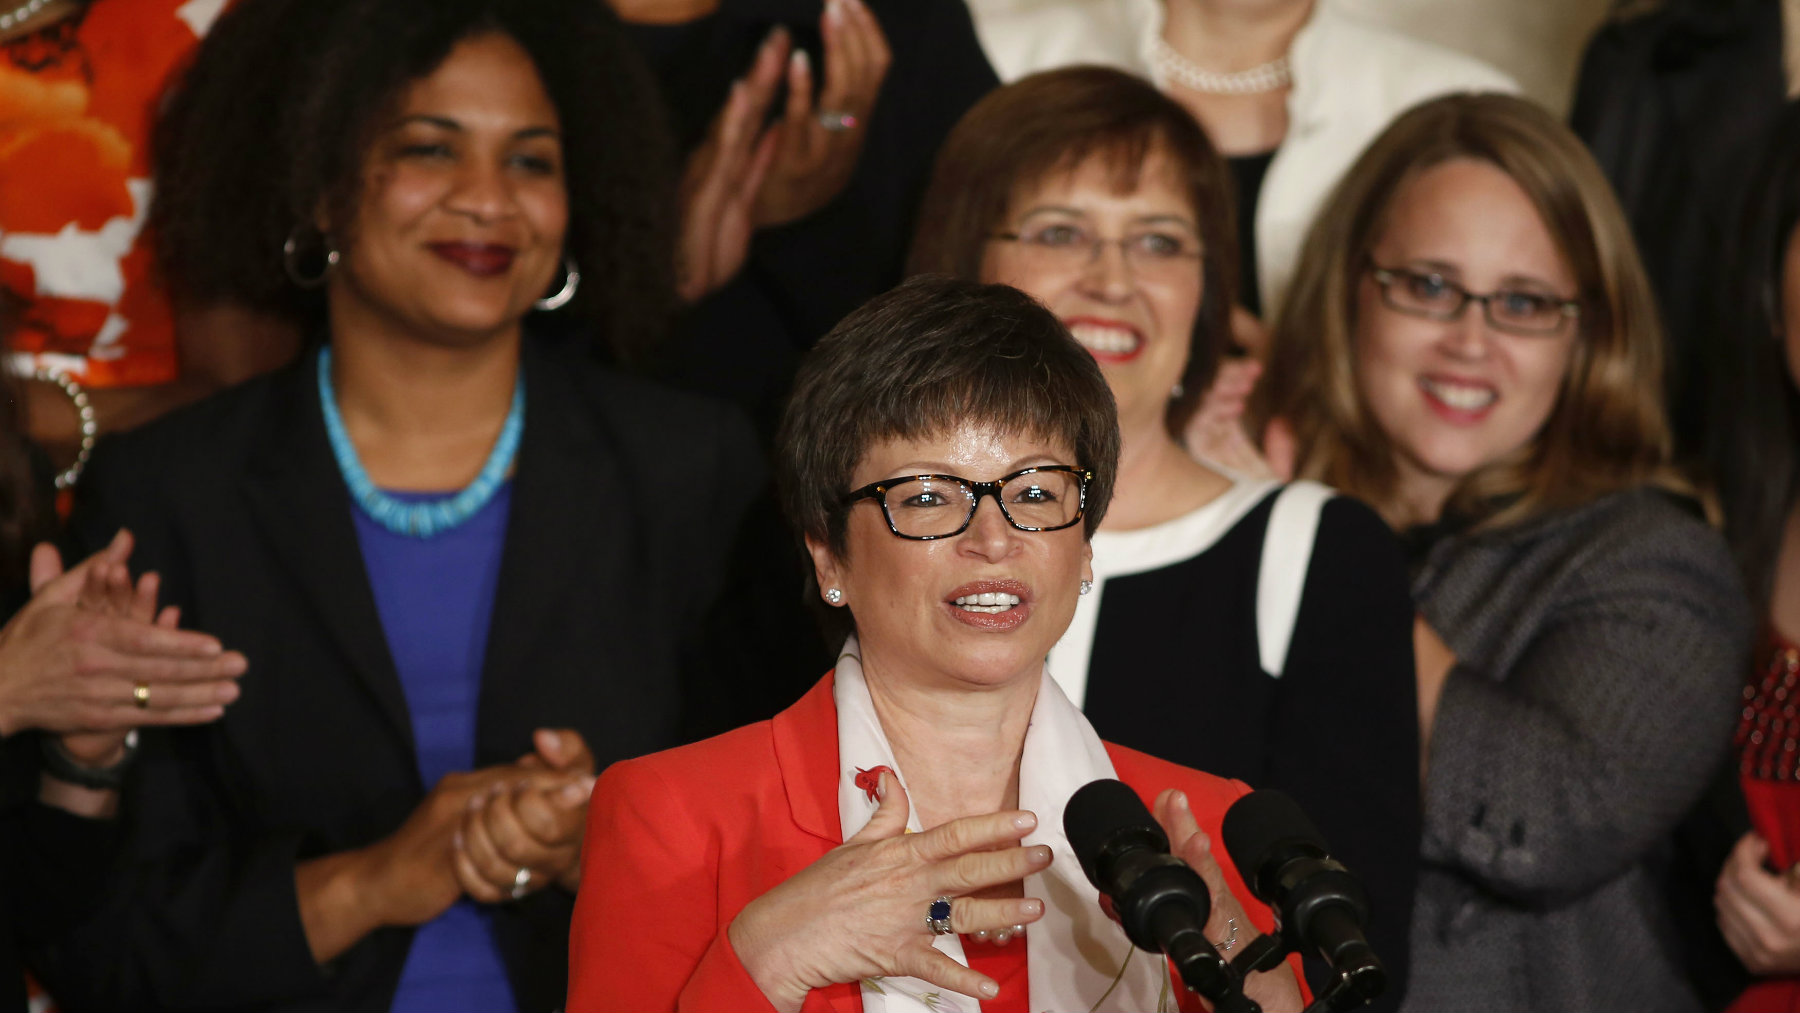 White House senior advisor Valerie Jarrett gives remarks on the 50th anniversary of the Equal Pay Act in the East Room at the White House in Washington, June 10, 2013. REUTERS/Larry Downing (UNITED STATES - Tags: POLITICS BUSINESS EMPLOYMENT)